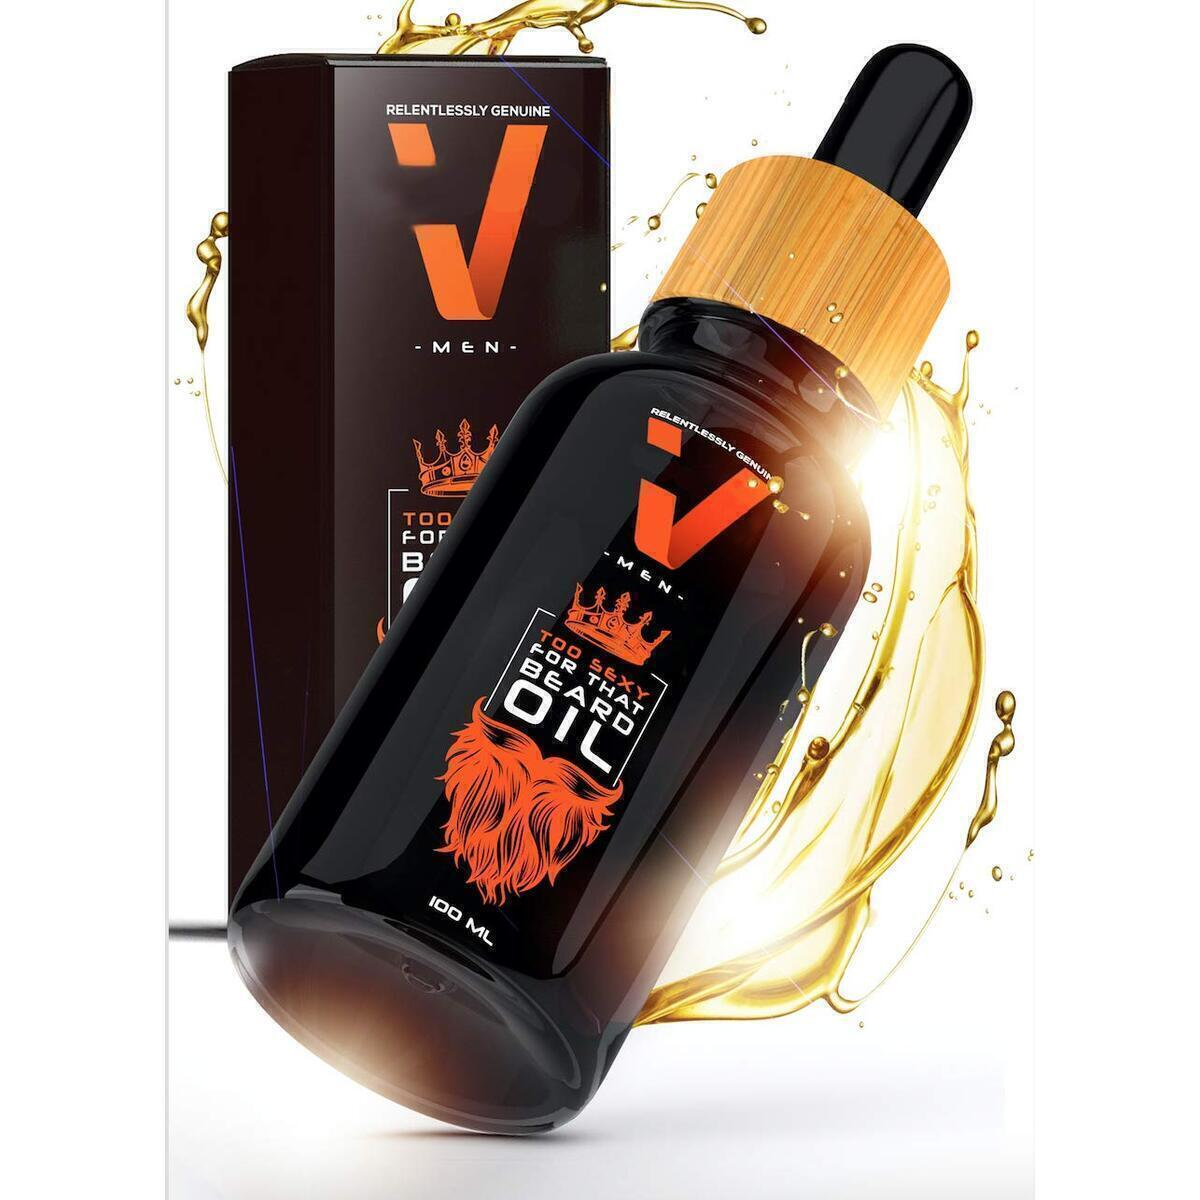 Organic Beard & Conditioning Oil for Men - Great Gift